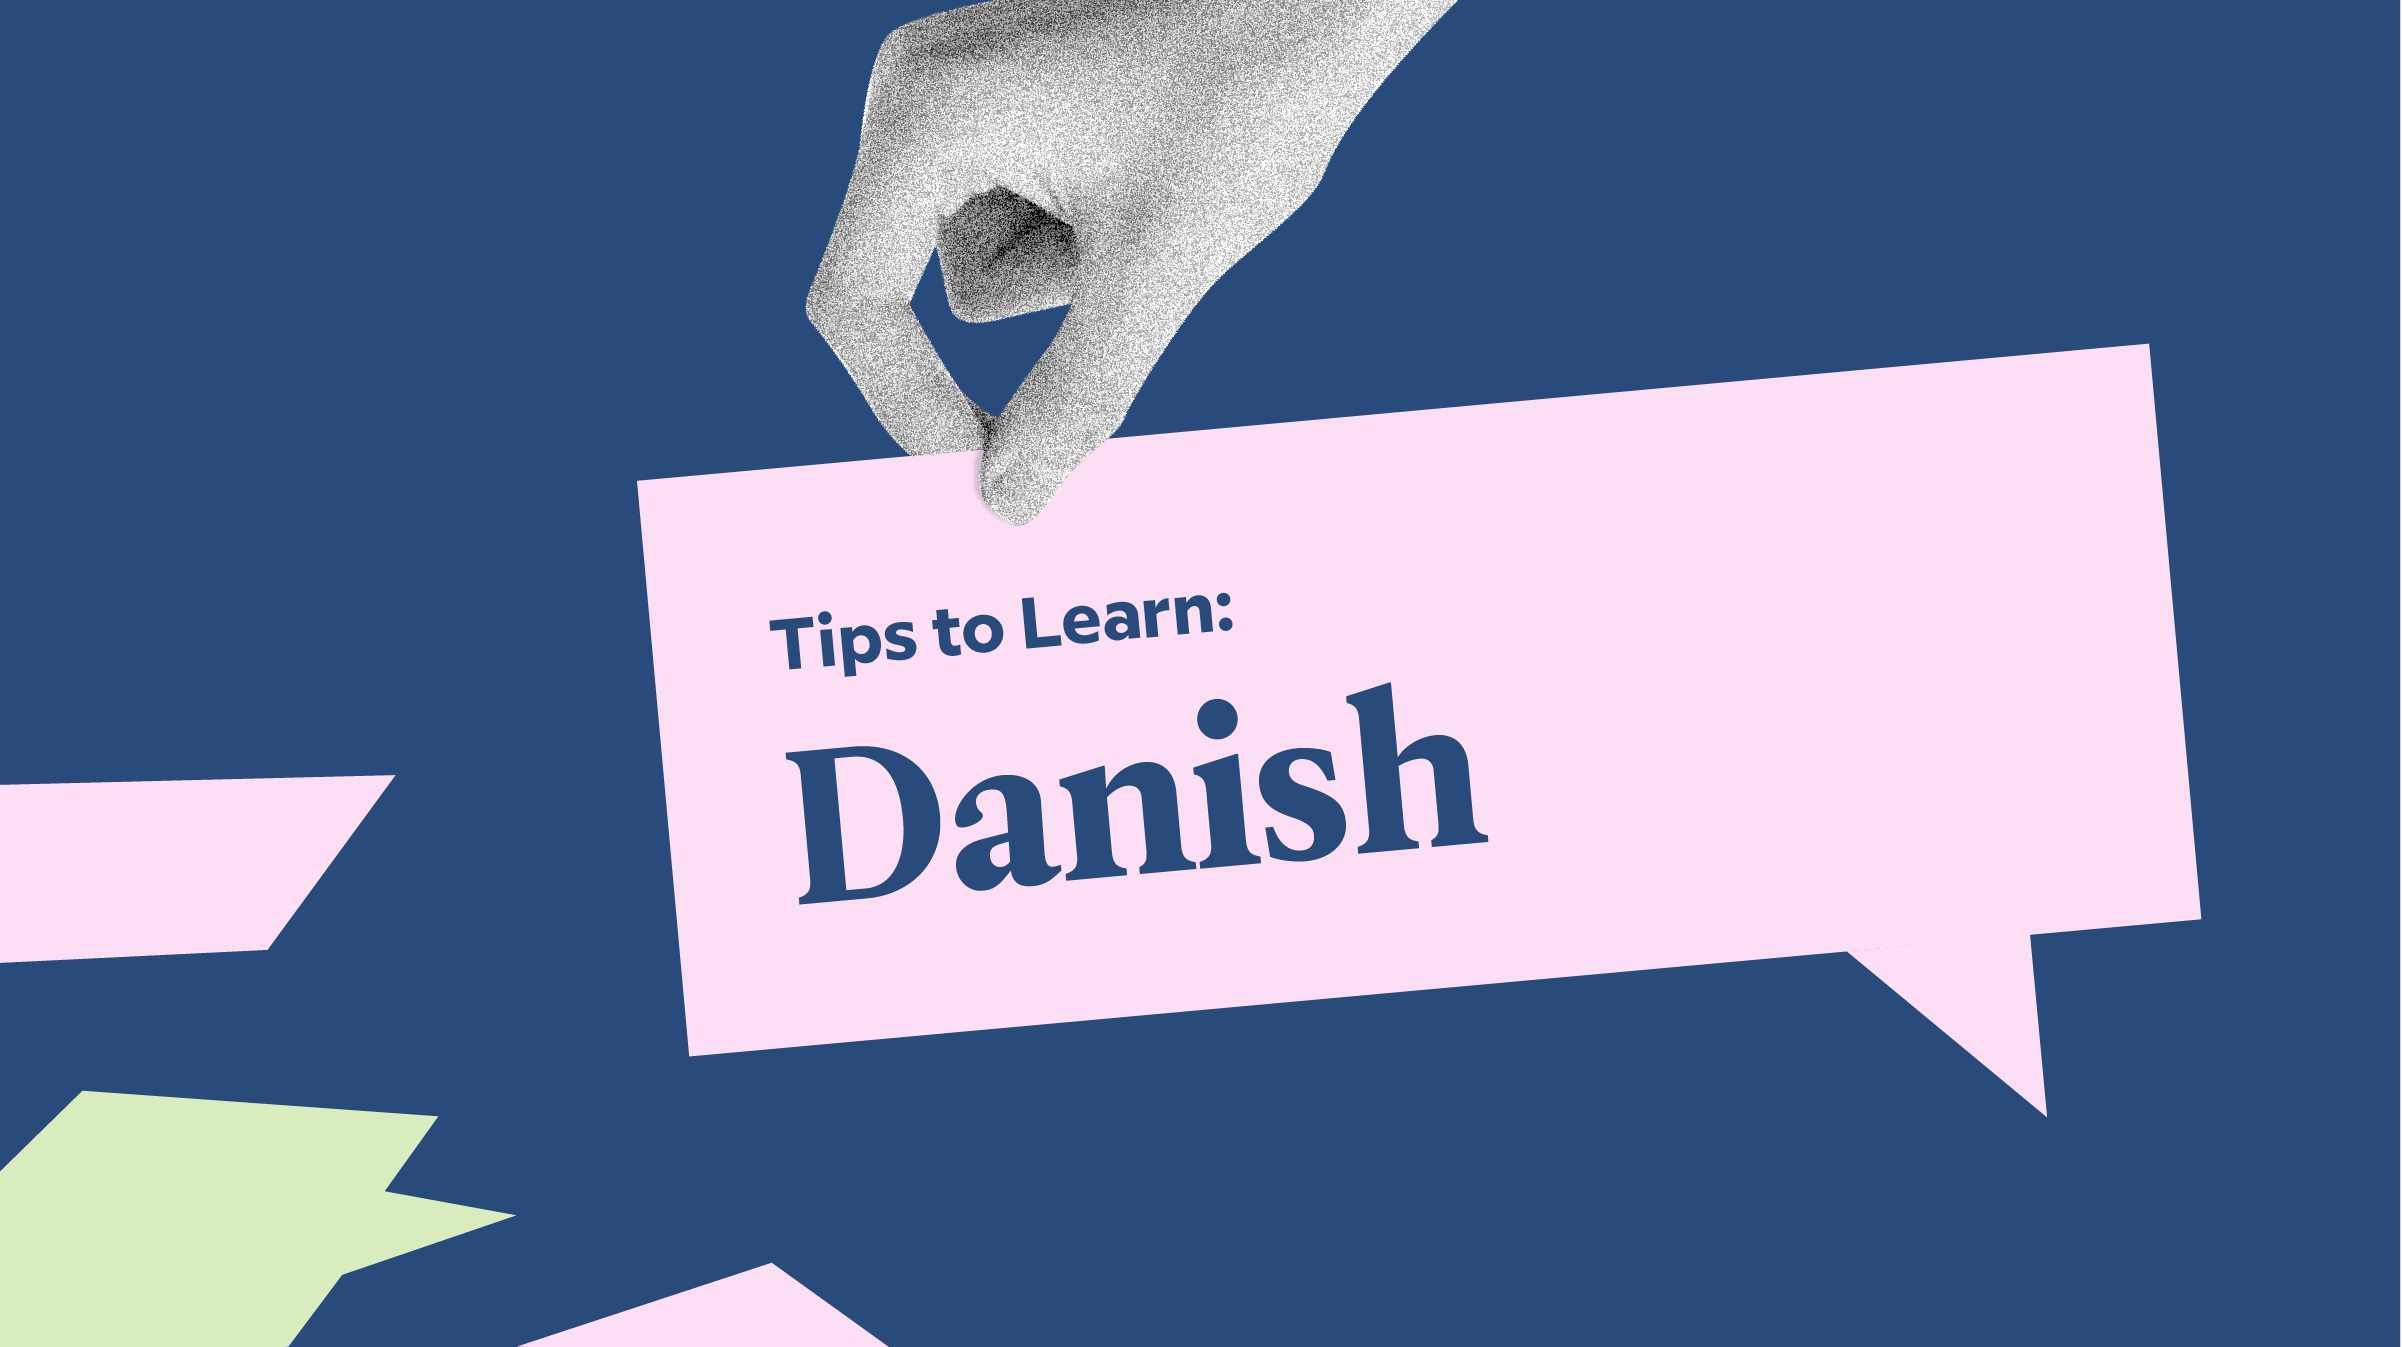 5 Very Good, Very Specific Tips To Learn Danish